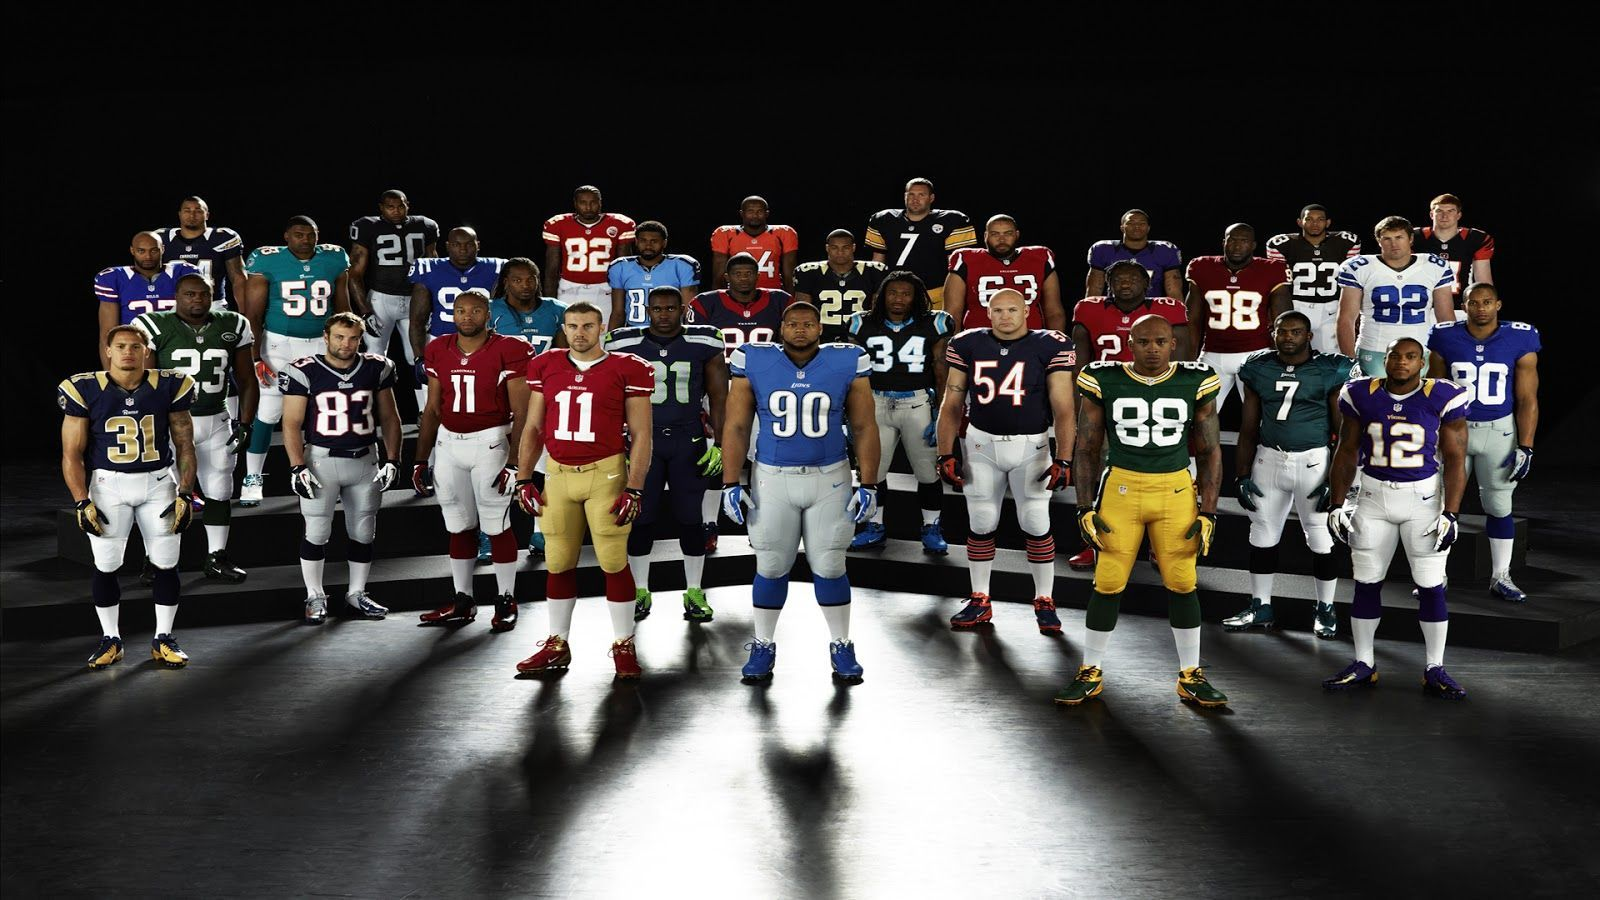 Nfl Players Wallpaper